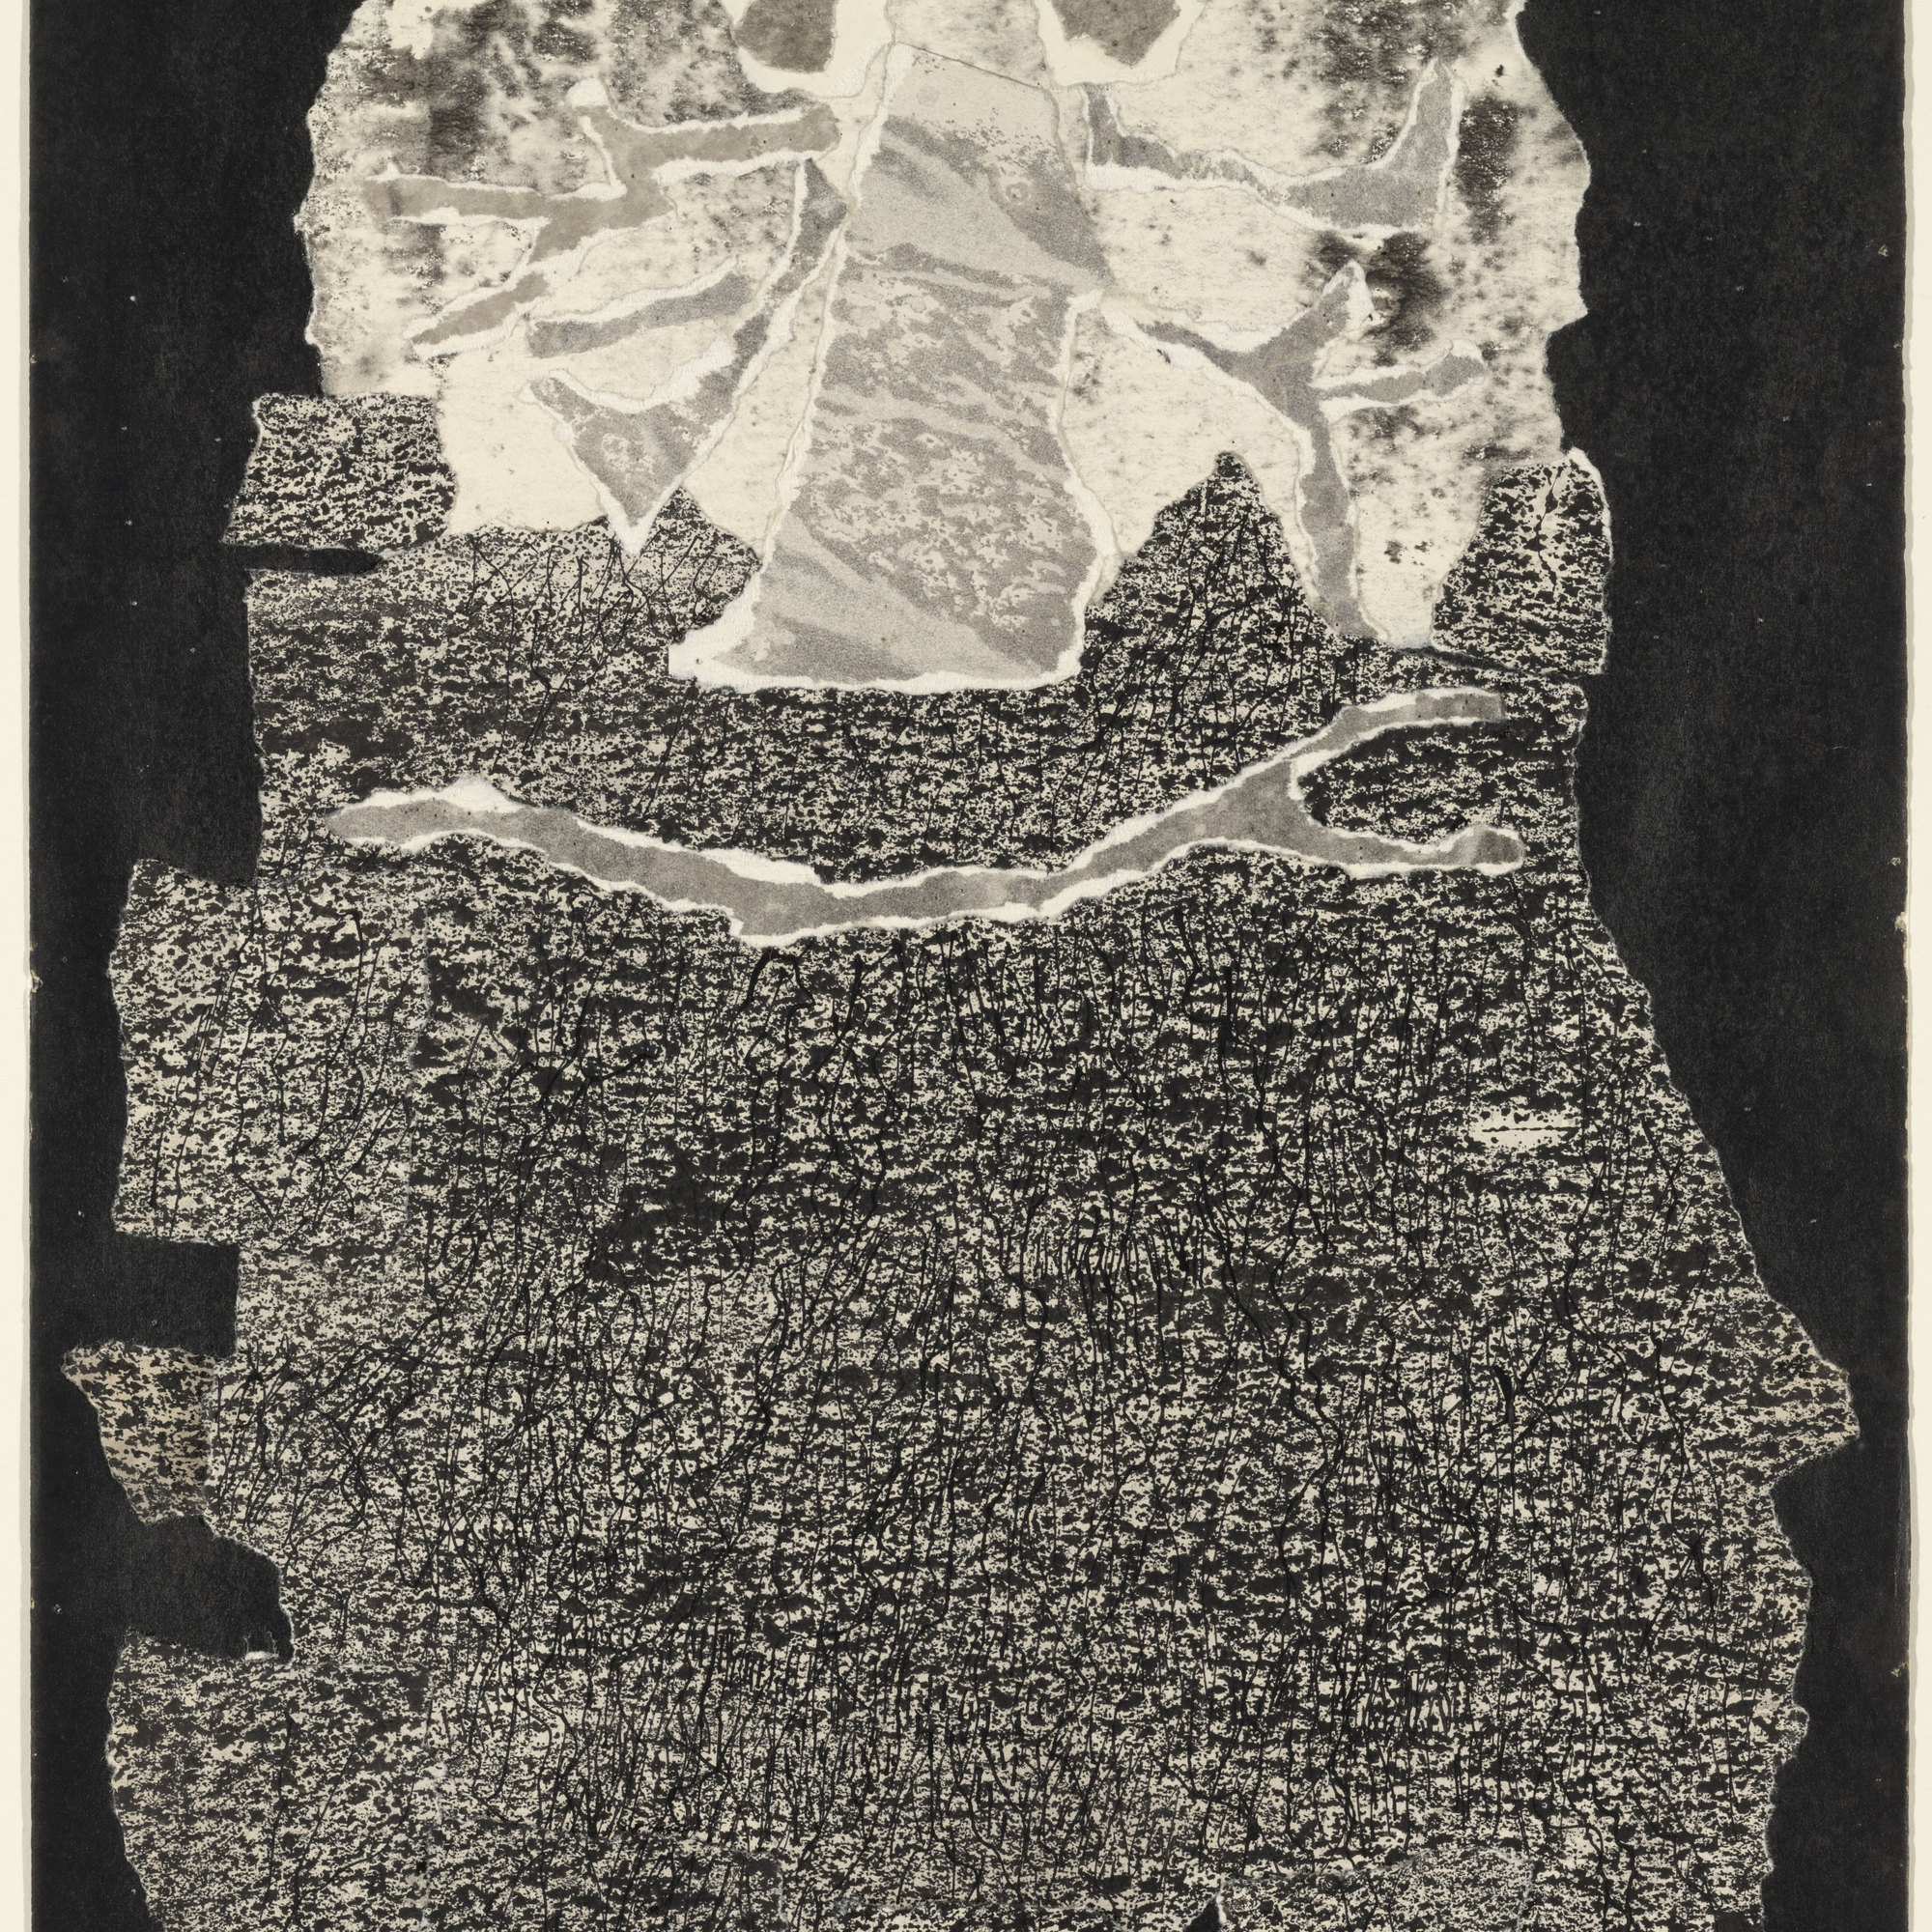 "Jean Dubuffet (French, 1901-1985). Le Vin de barbe. 1959. Torn-and-pasted paper with ink and ink transfer on paper, composition and sheet: 20 x 13 1/4"" (50.8 x 33.6 cm). The Museum of Modern Art, New York. Nina and Gordon Bunshaft Bequest, 1995. © 2014 Artists Rights Society (ARS), New York /ADAGP, Paris."